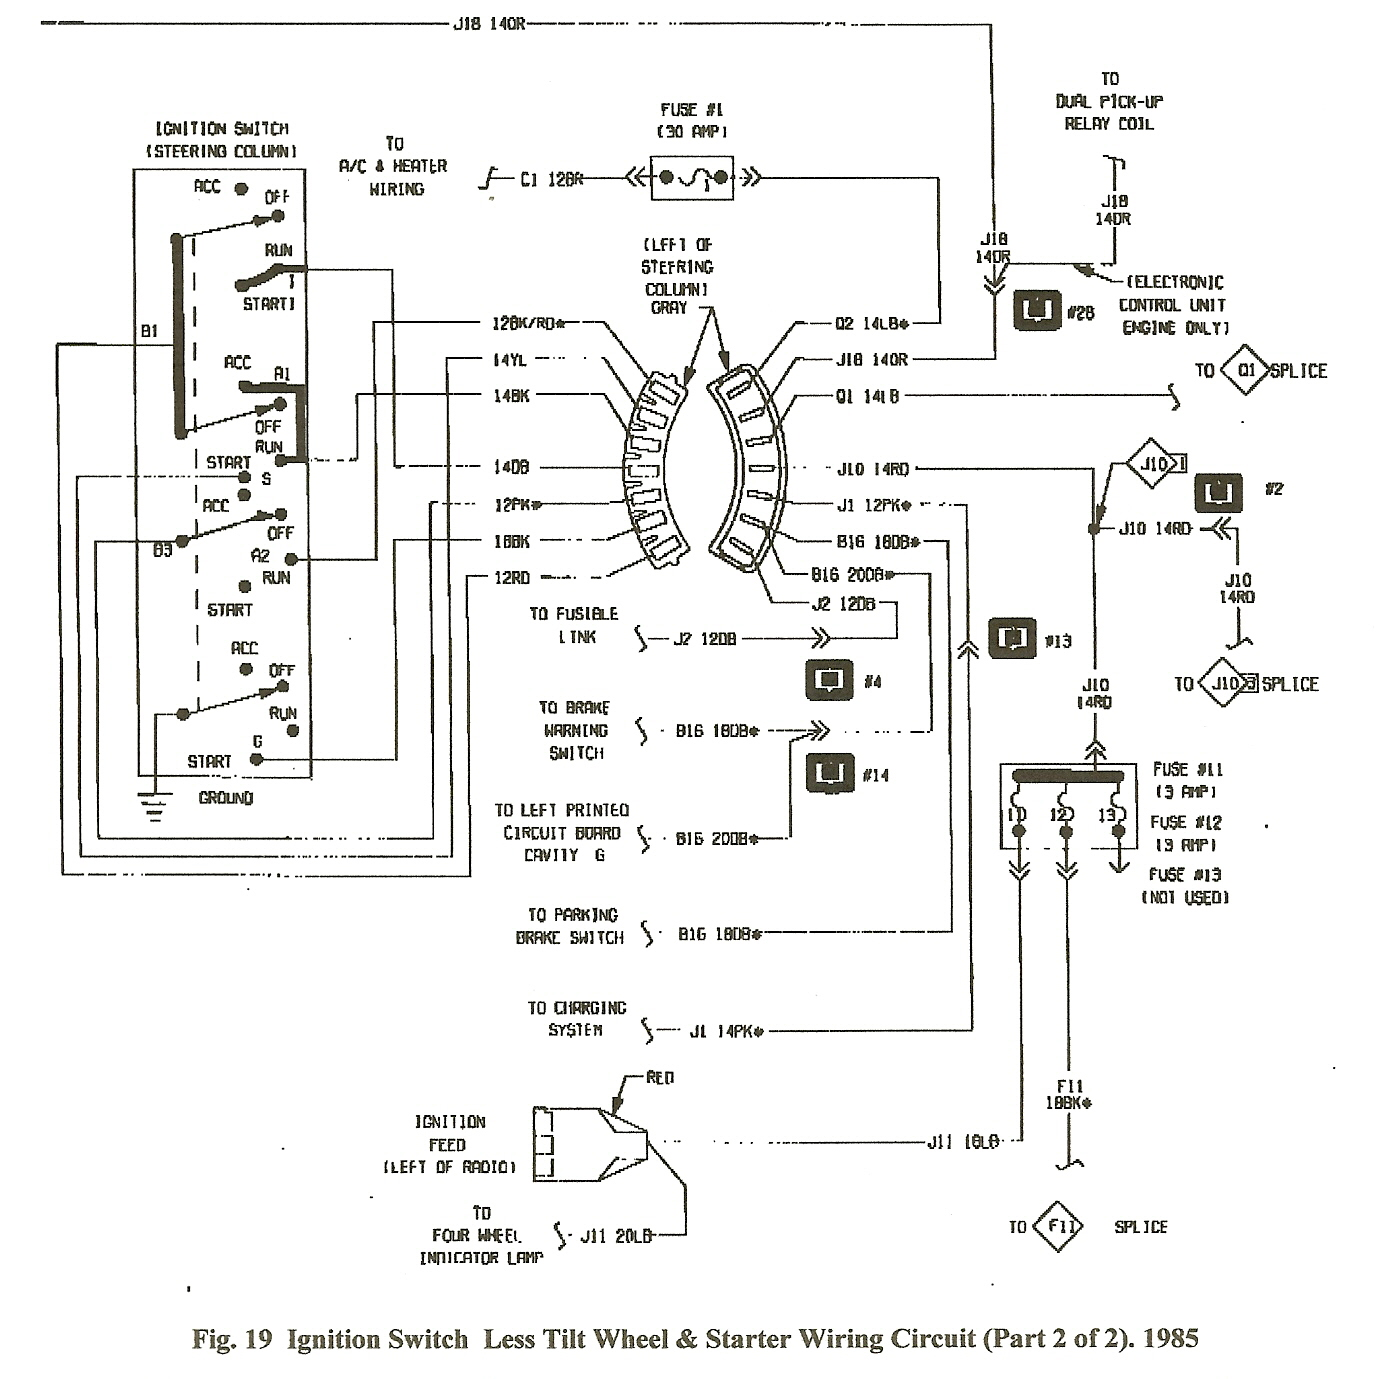 new user and help with ignition wiring electronics forum 1994 Dodge Ram 2500 at gsmportal.co